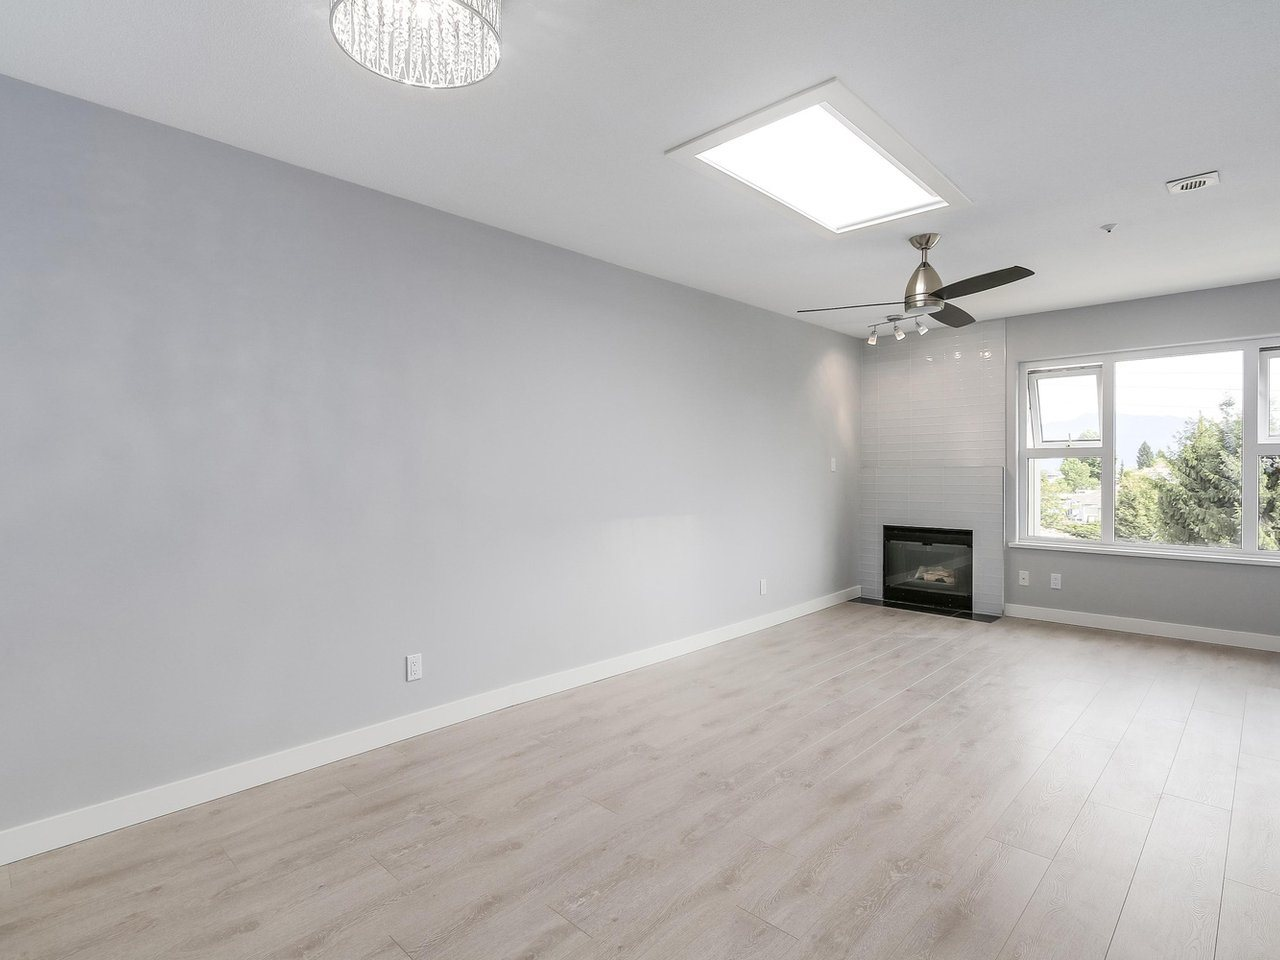 Condo Apartment at 312 4893 CLARENDON STREET, Unit 312, Vancouver East, British Columbia. Image 2